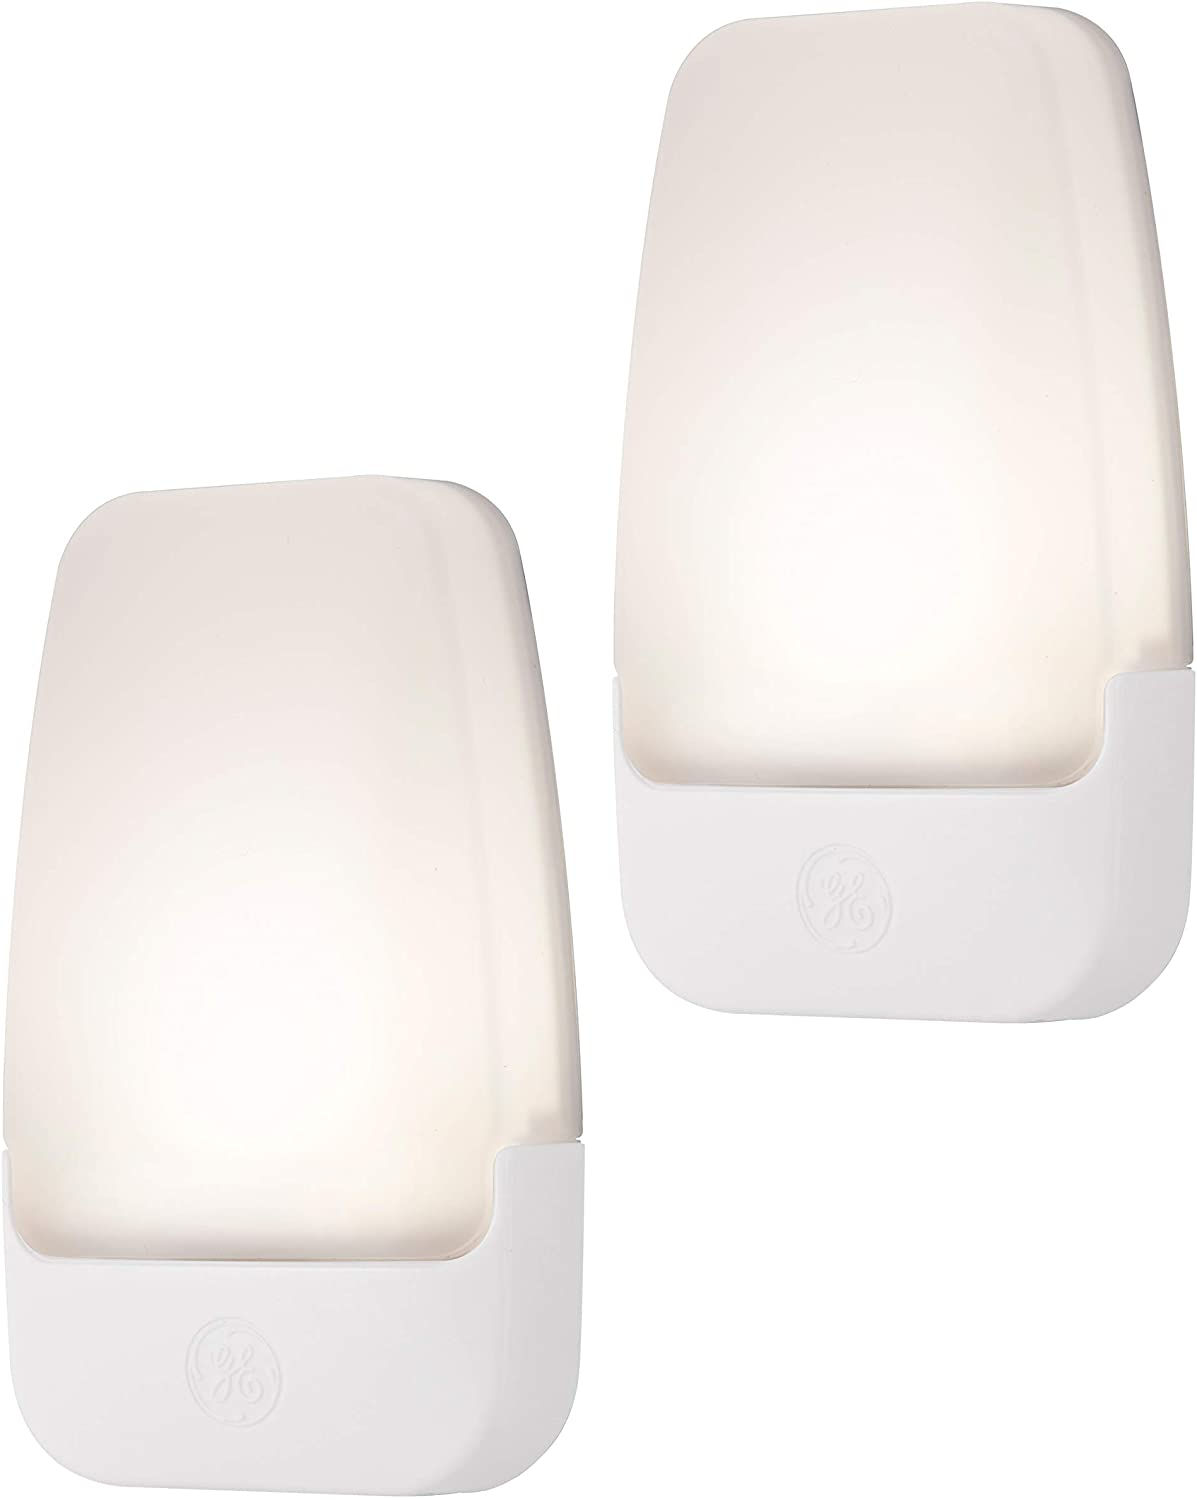 GE 685 Lamps Box of 25